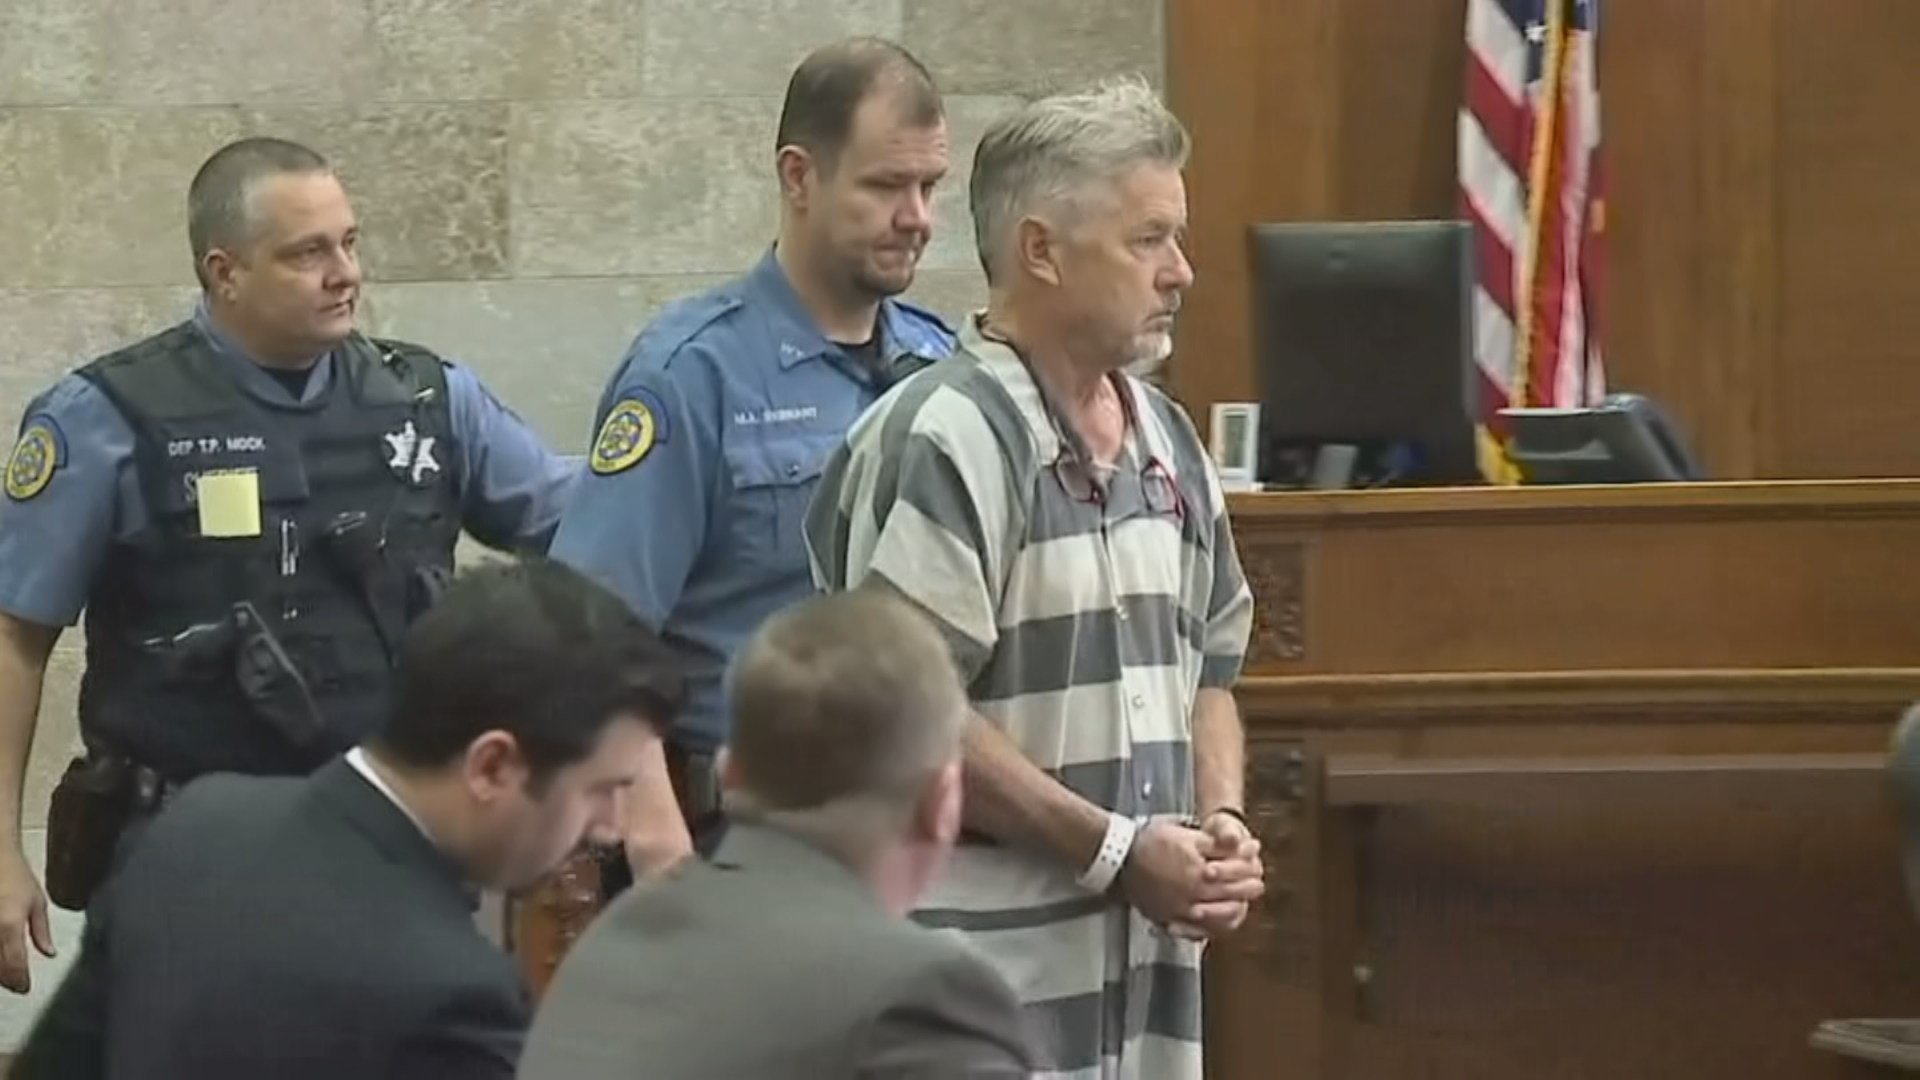 John Schooley, who designed the Verruckt slide for the Schlitterbahn Water Park in Kansas City, KS made his first court appearance Monday in the 2016 death of Caleb Schwab. (Pool)